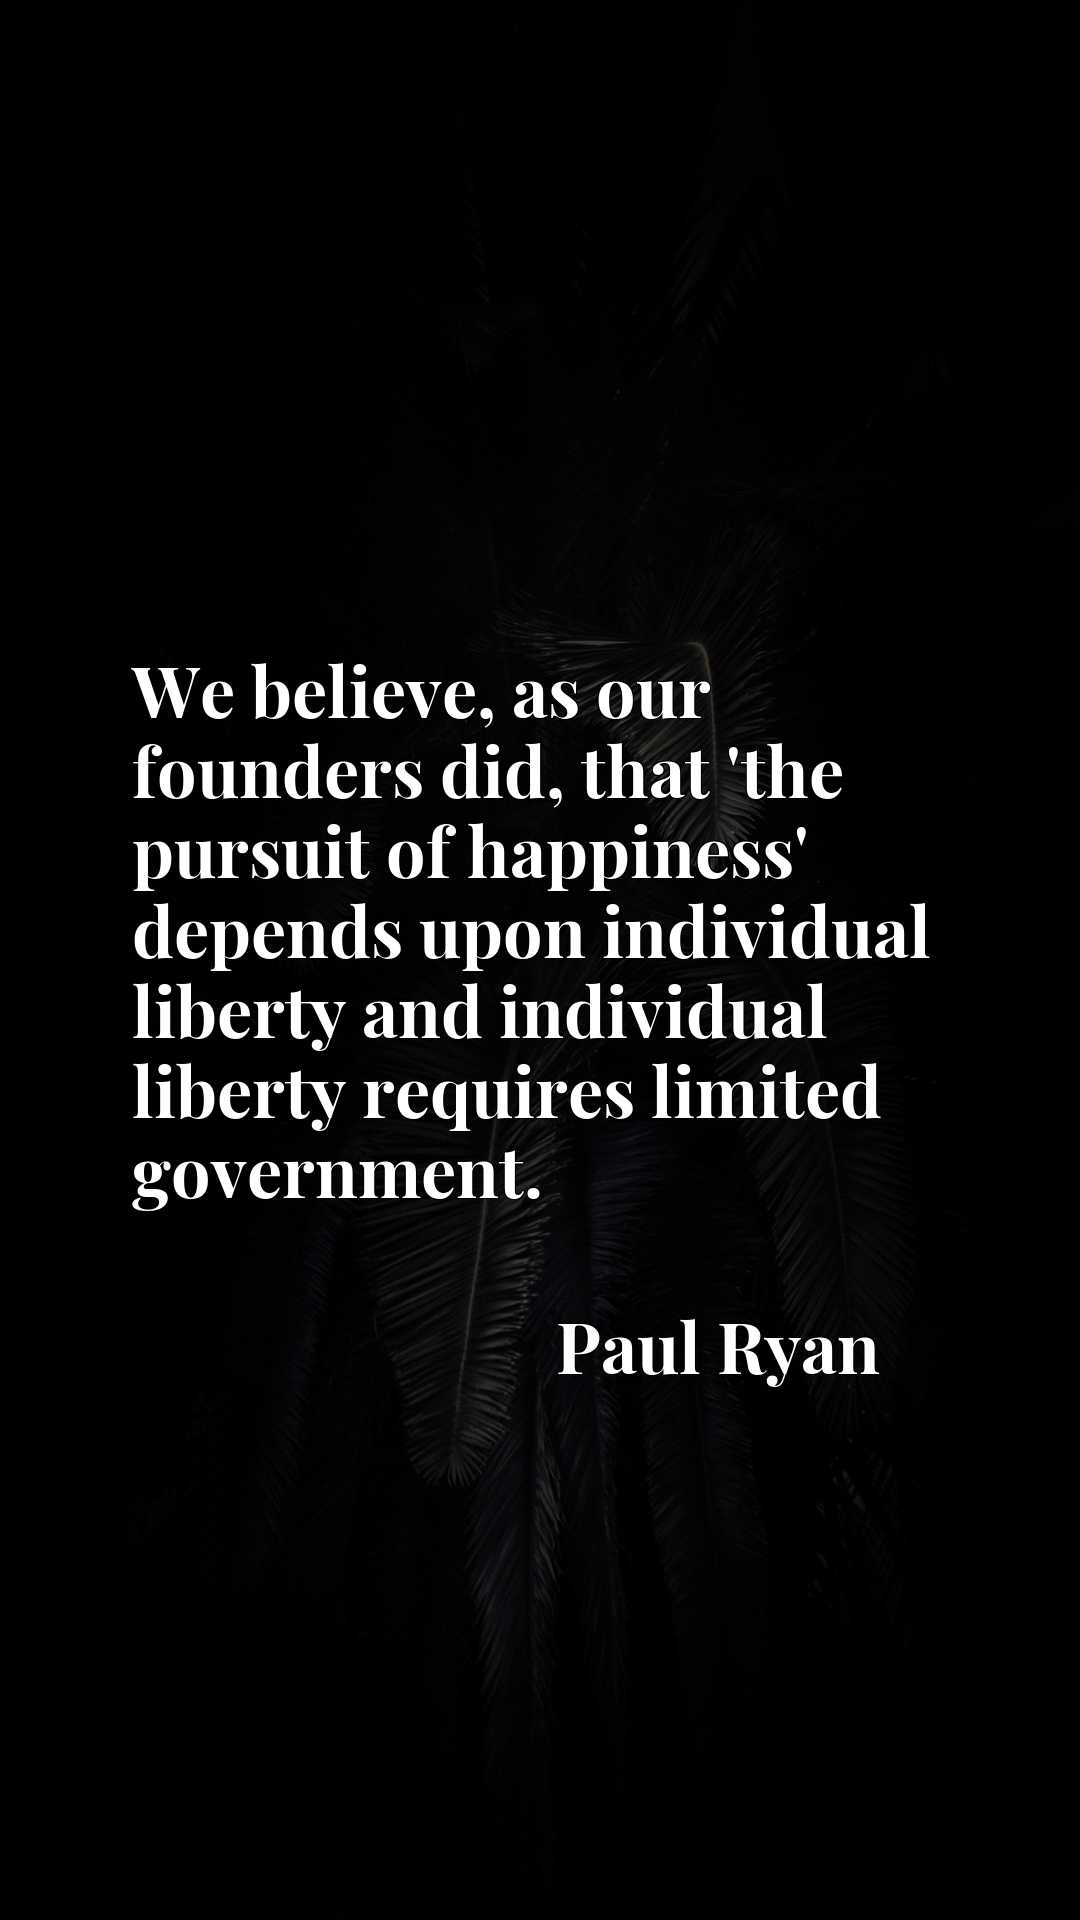 We believe, as our founders did, that 'the pursuit of happiness' depends upon individual liberty and individual liberty requires limited government.